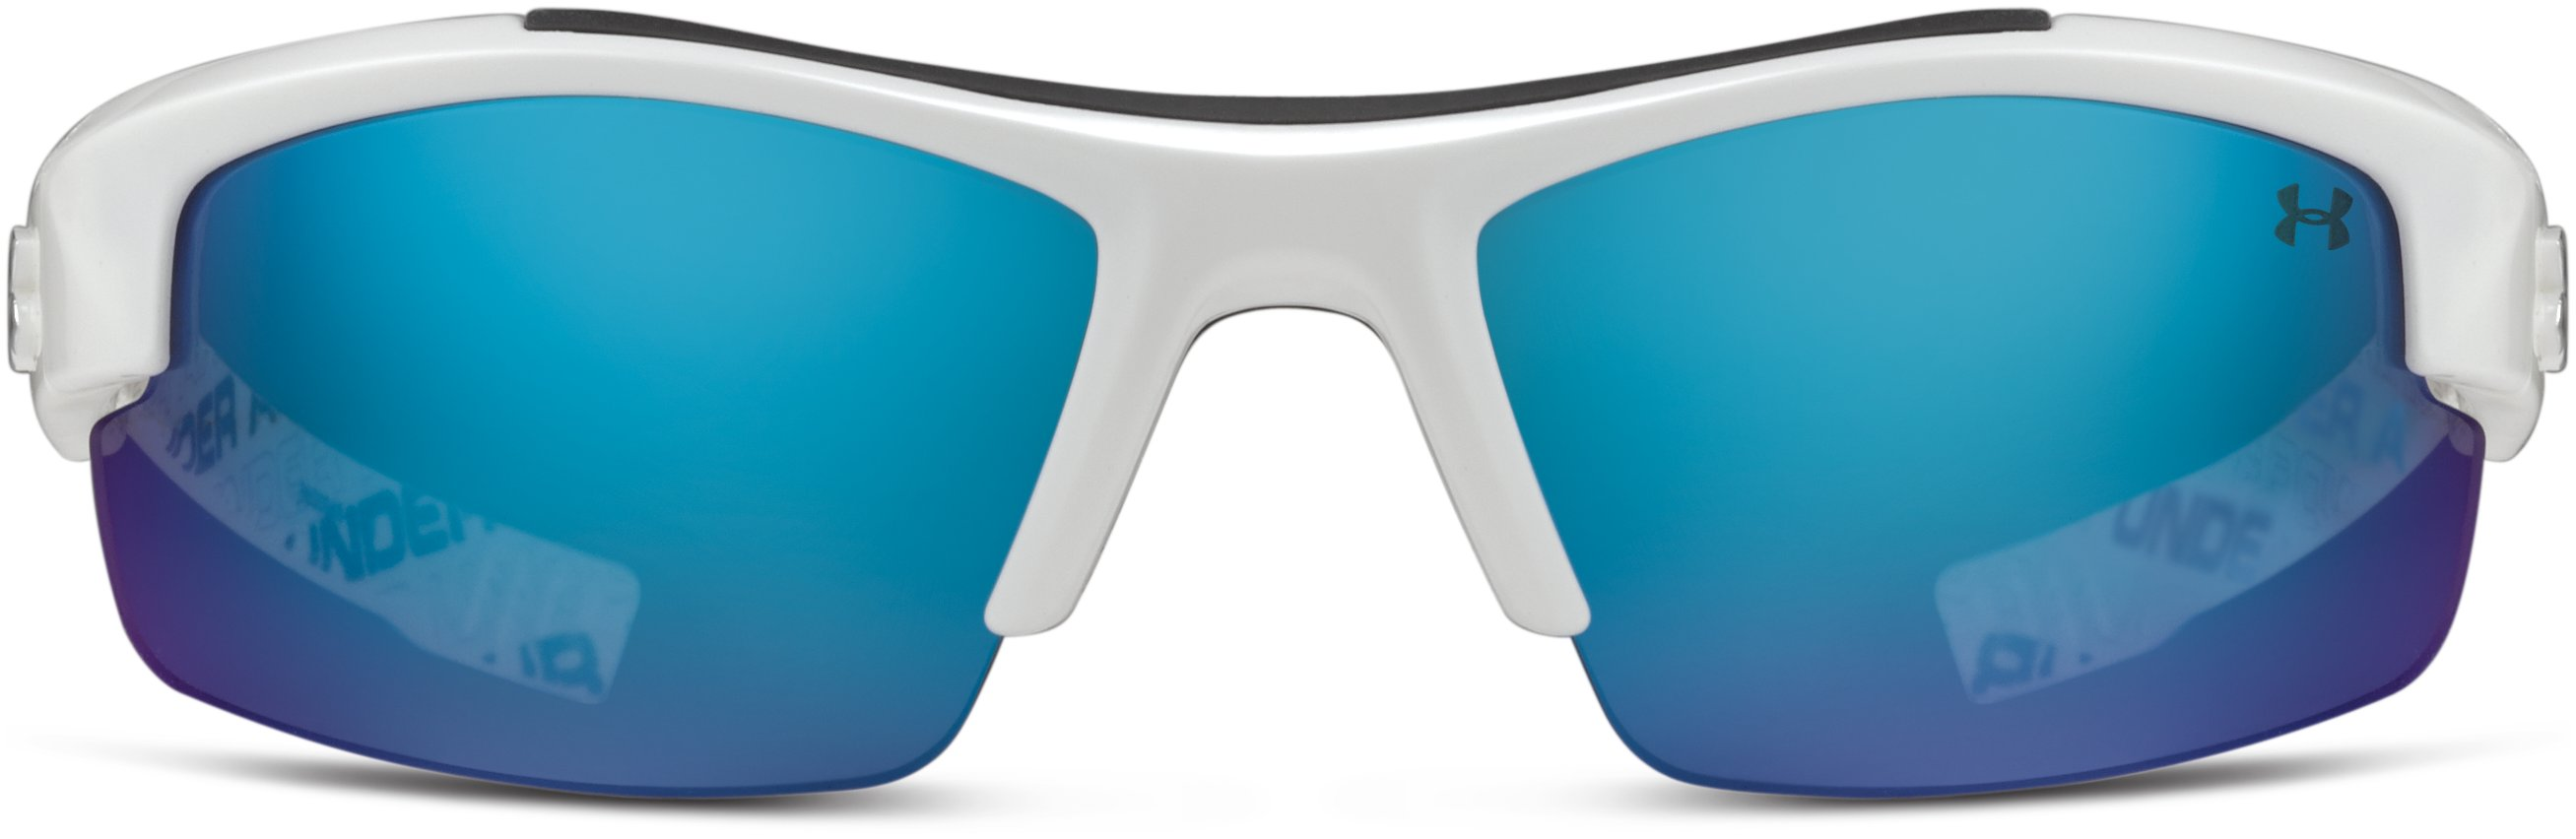 Kids' UA Nitro L Sunglasses, Shiny White With Print